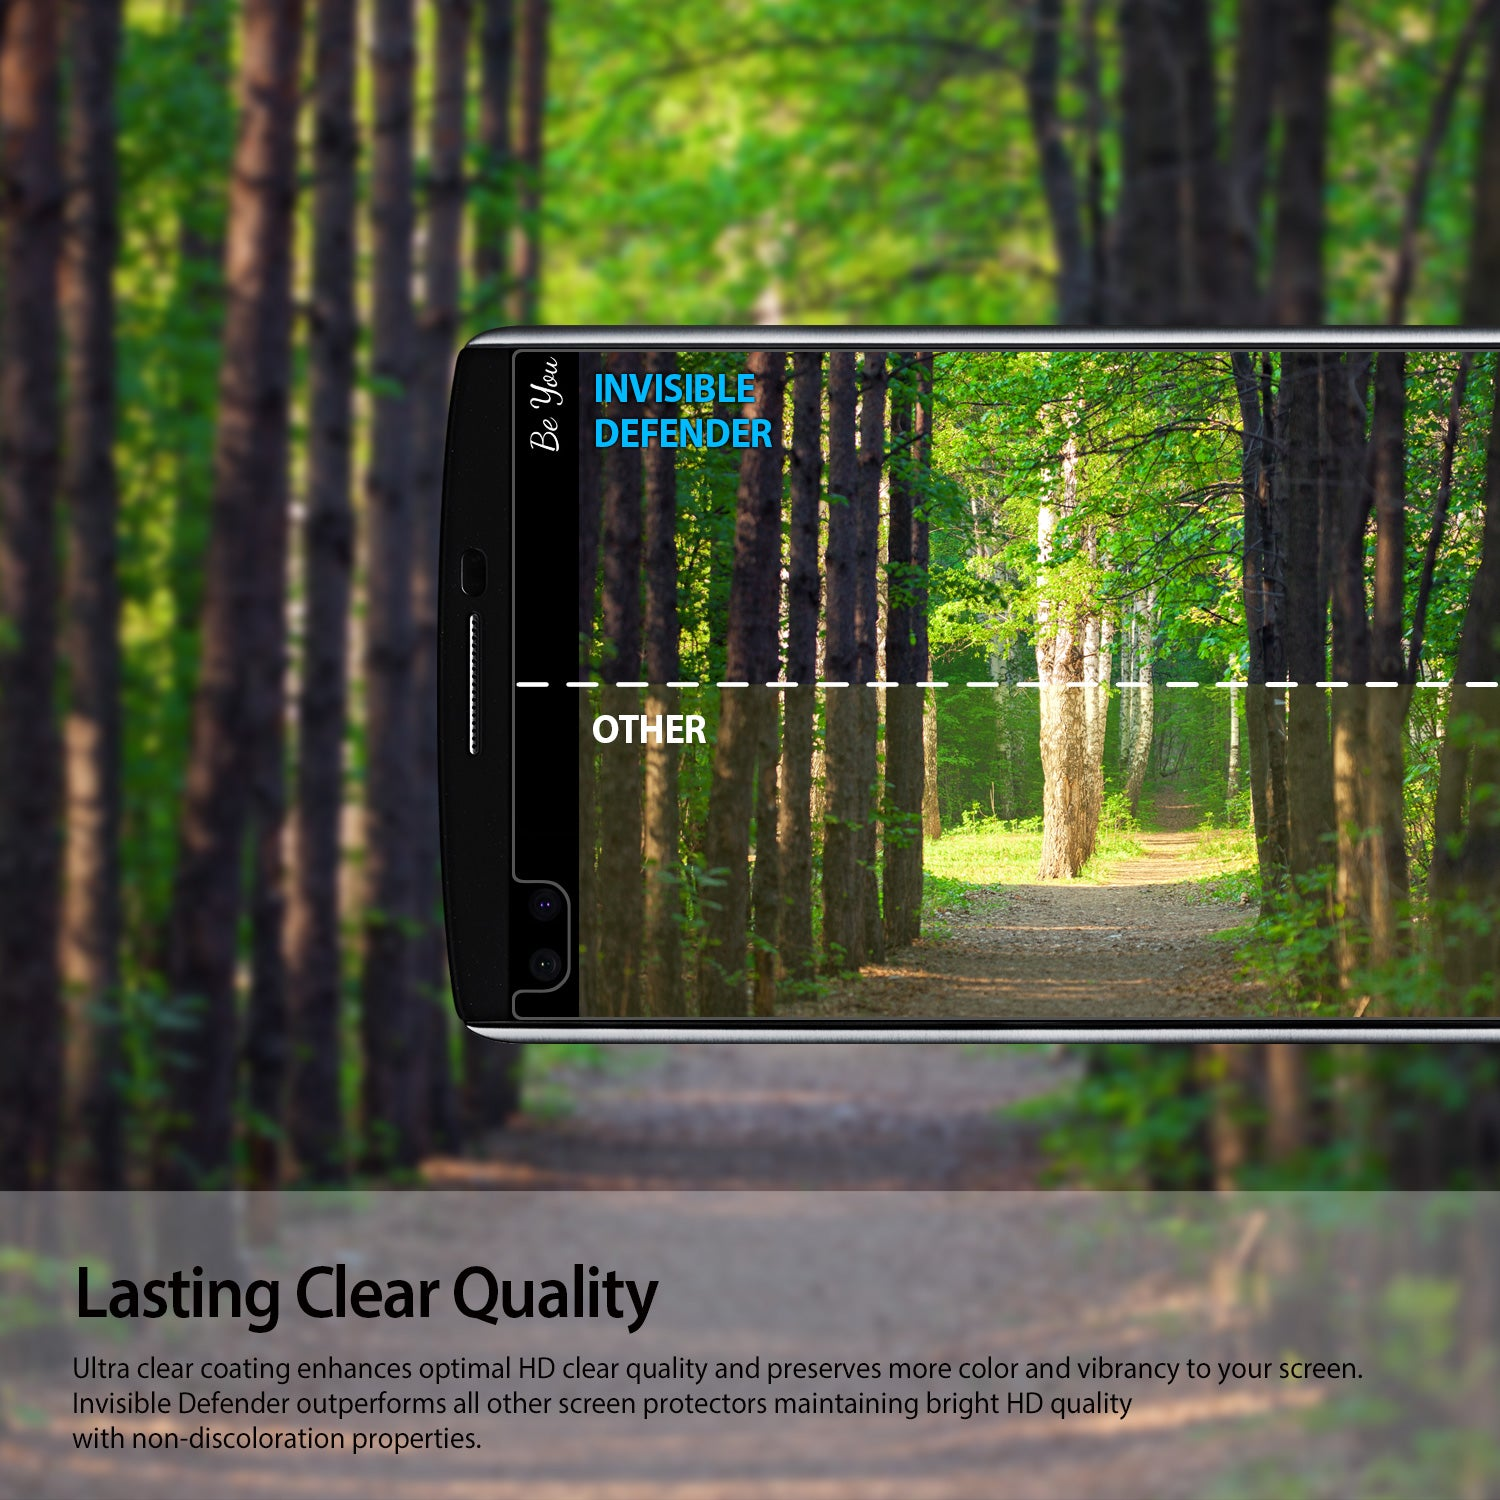 lasting clear quality